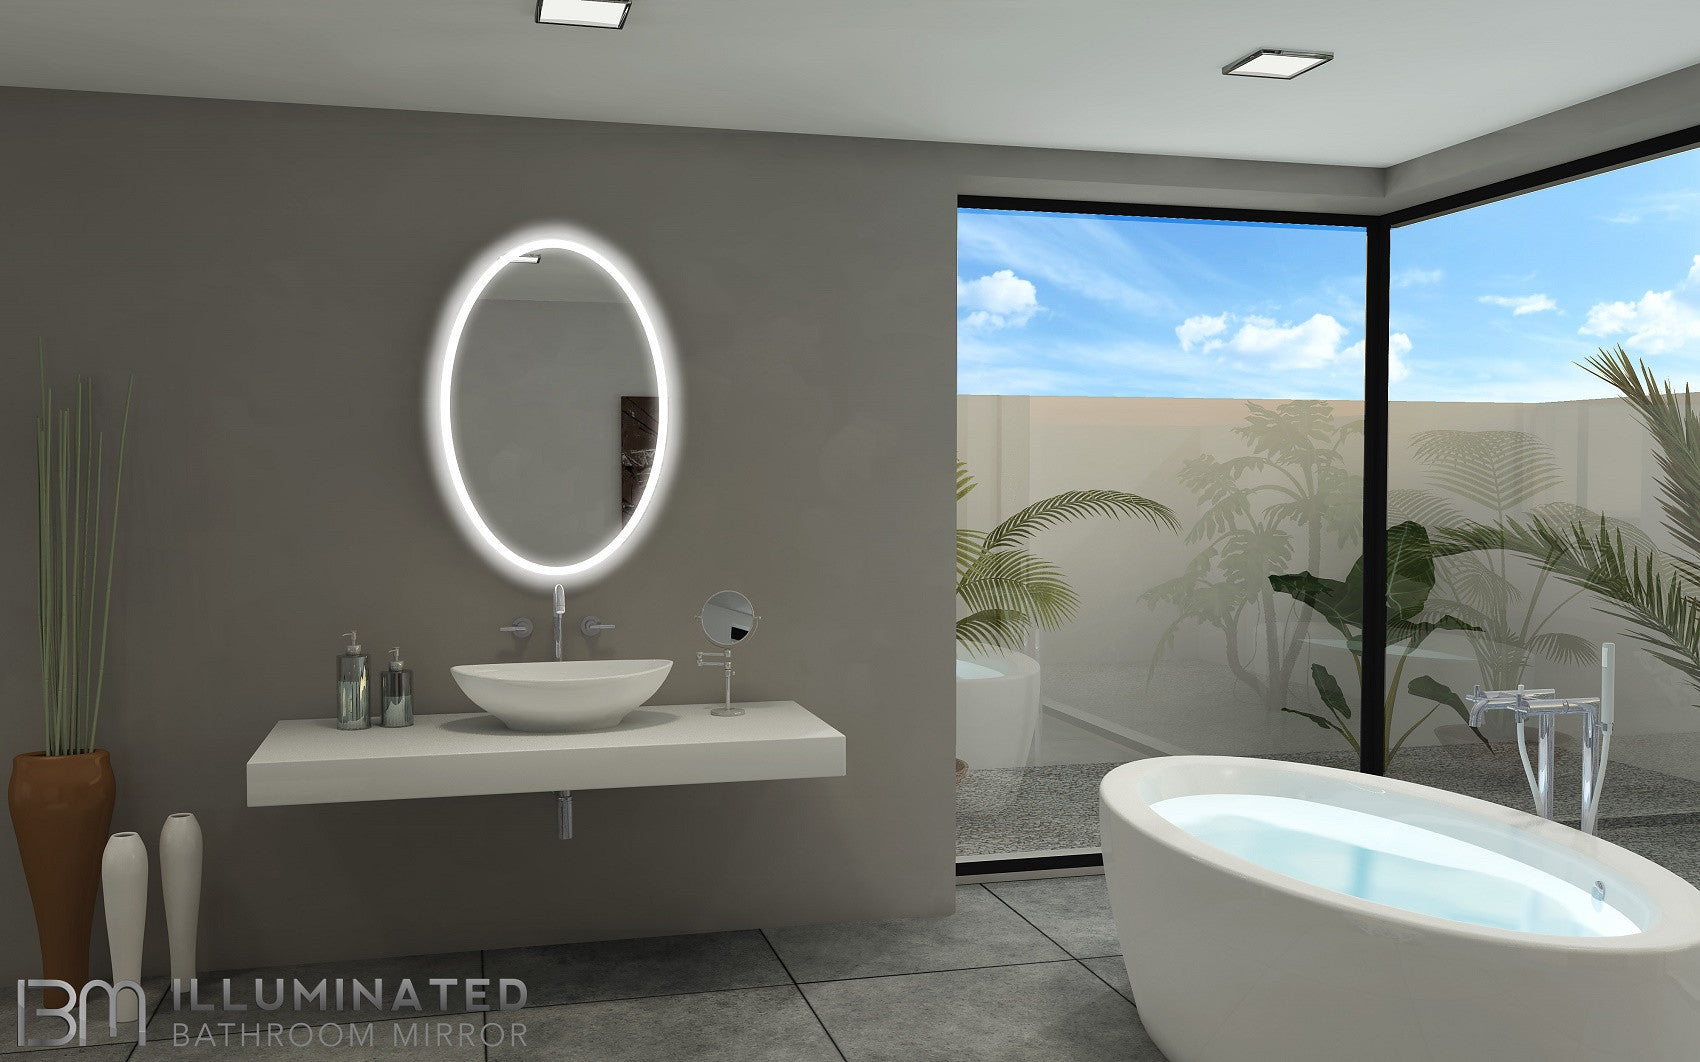 Dimmable Backlit Oval 24 X 36. TYPE: Backlit Mirror